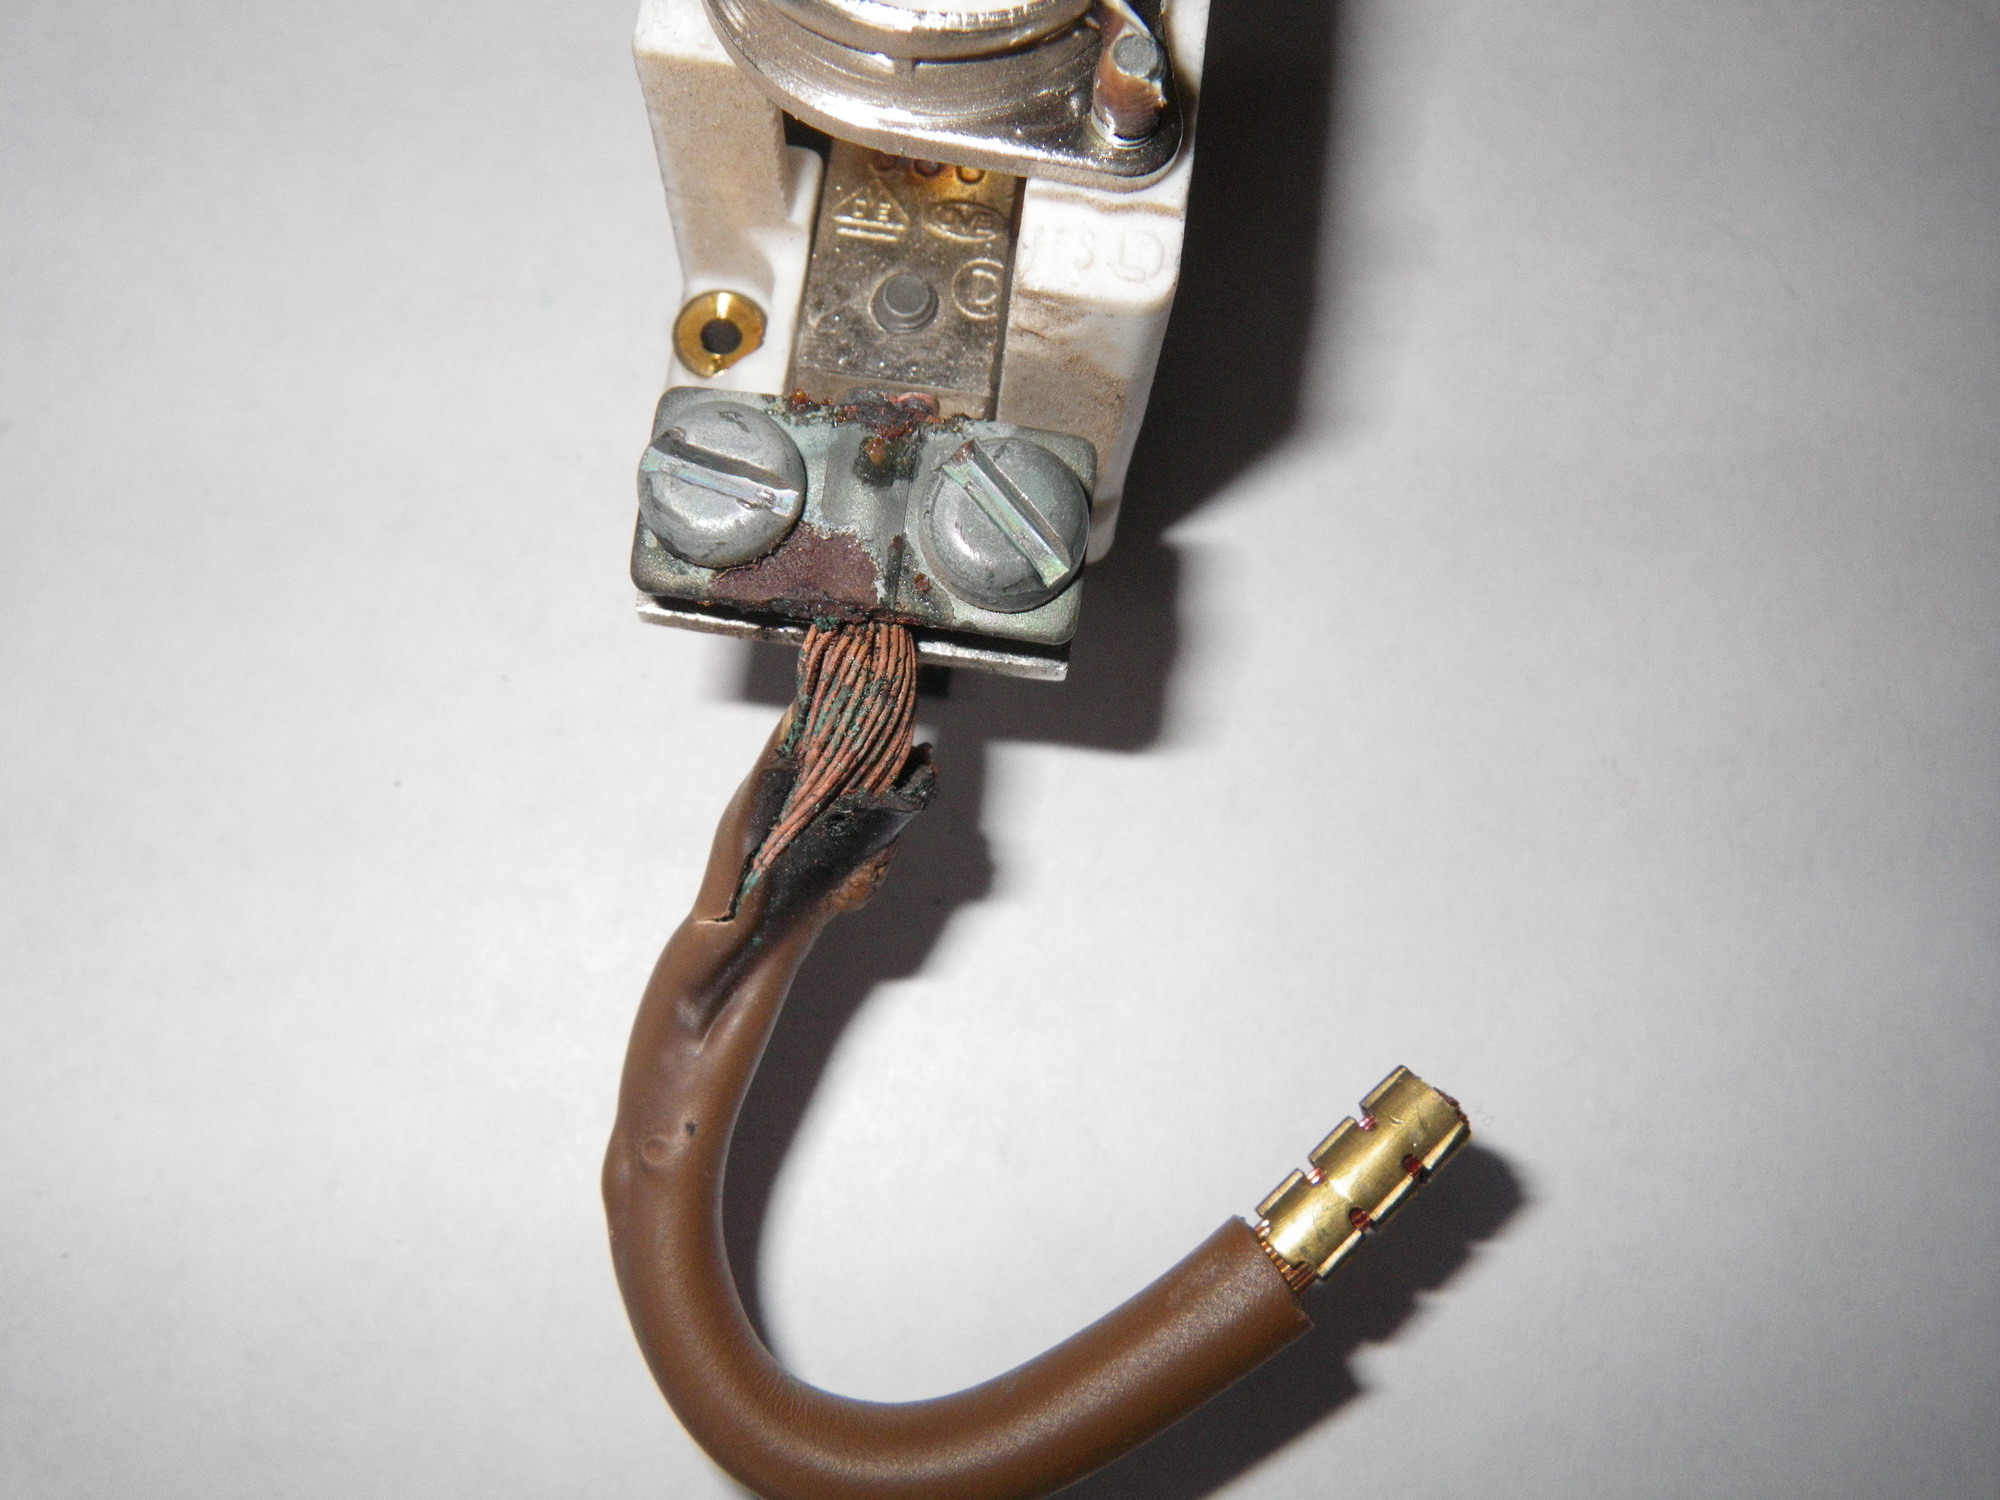 No Rcbo On Shower And Burnt Out Connections Main Fuse Electric Wiring Rcd There Should Be An Or All Showers